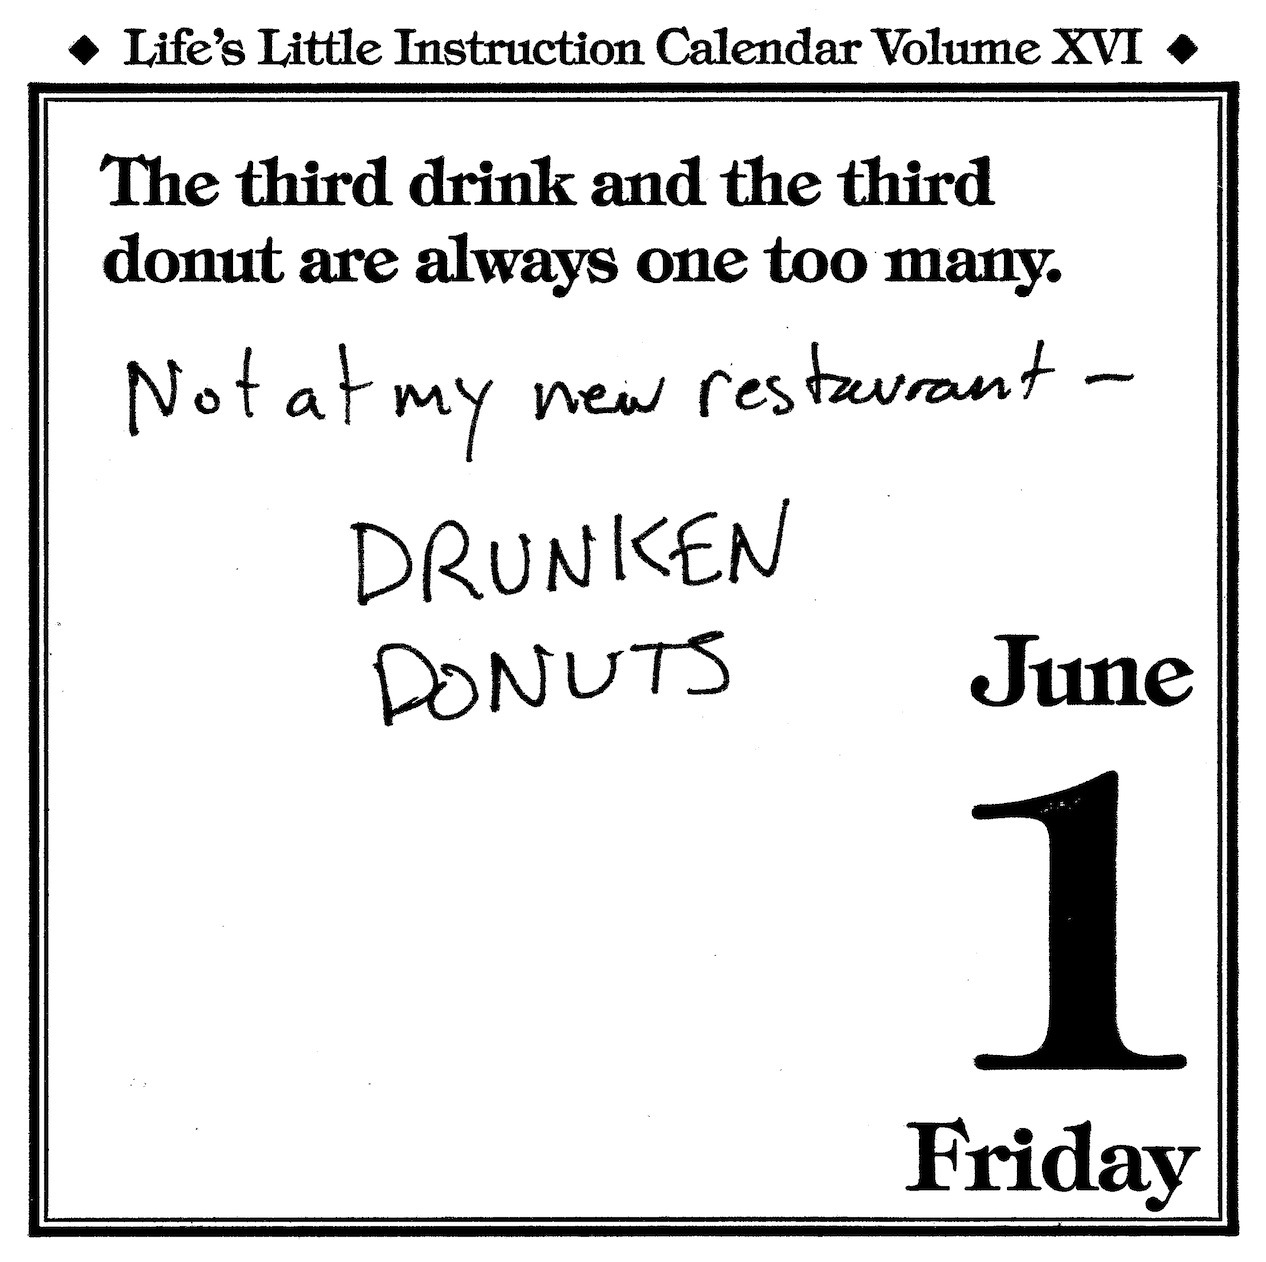 Happy National Donut Day! See lazydad, the counter revolution to your Orwellian food future is here. The gluttonous shall inherit the earth. Since some of us (points finger at myself) are already under the regime's healthy food mind control, subversively have one for me…one of the fallen ones.